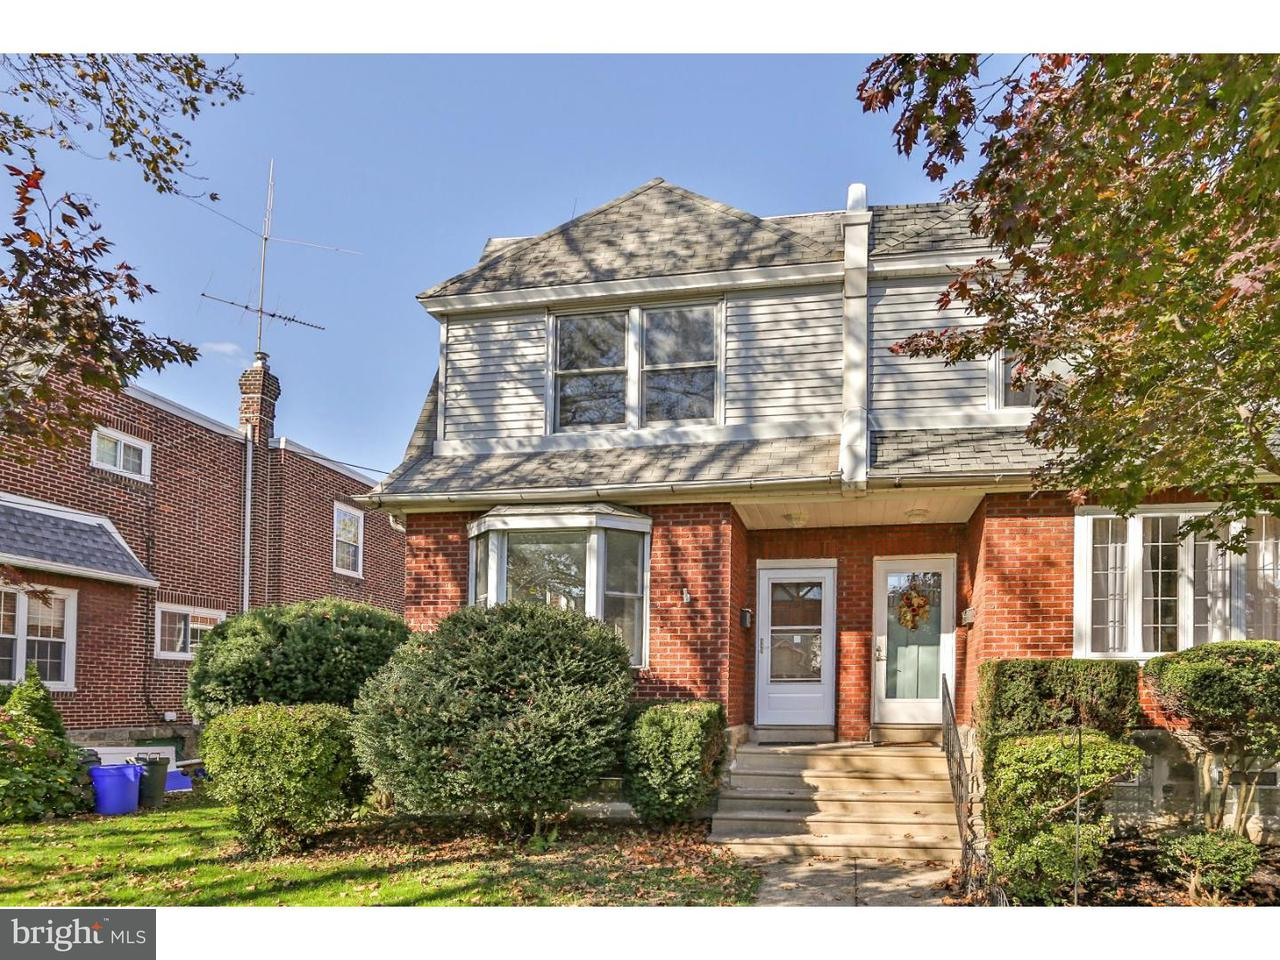 Townhouse for Sale at 723 16TH Avenue Prospect Park, Pennsylvania 19076 United States